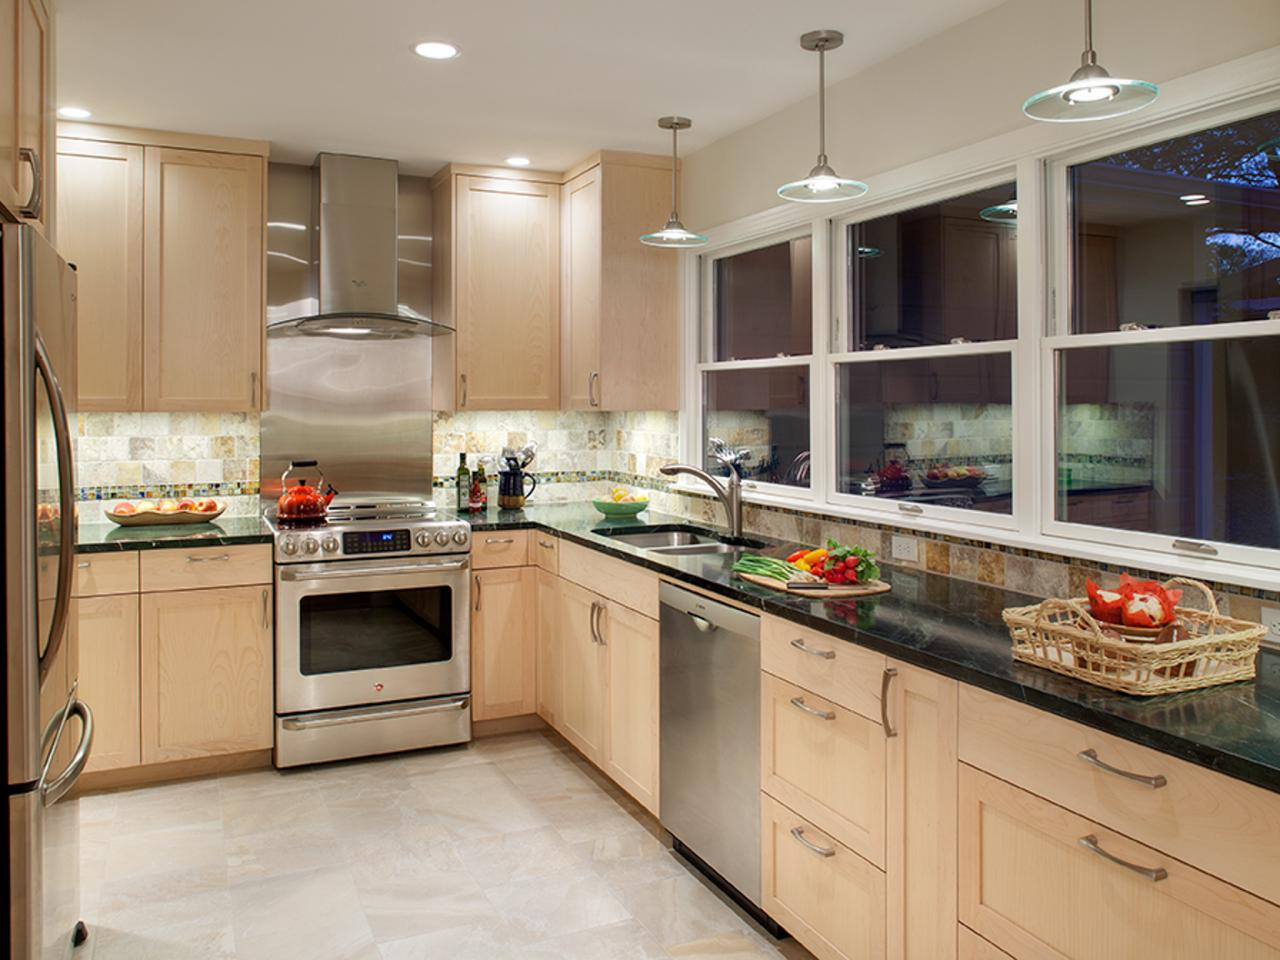 Undercounter Kitchen Lighting Under Cabinet Lighting Choices Diy